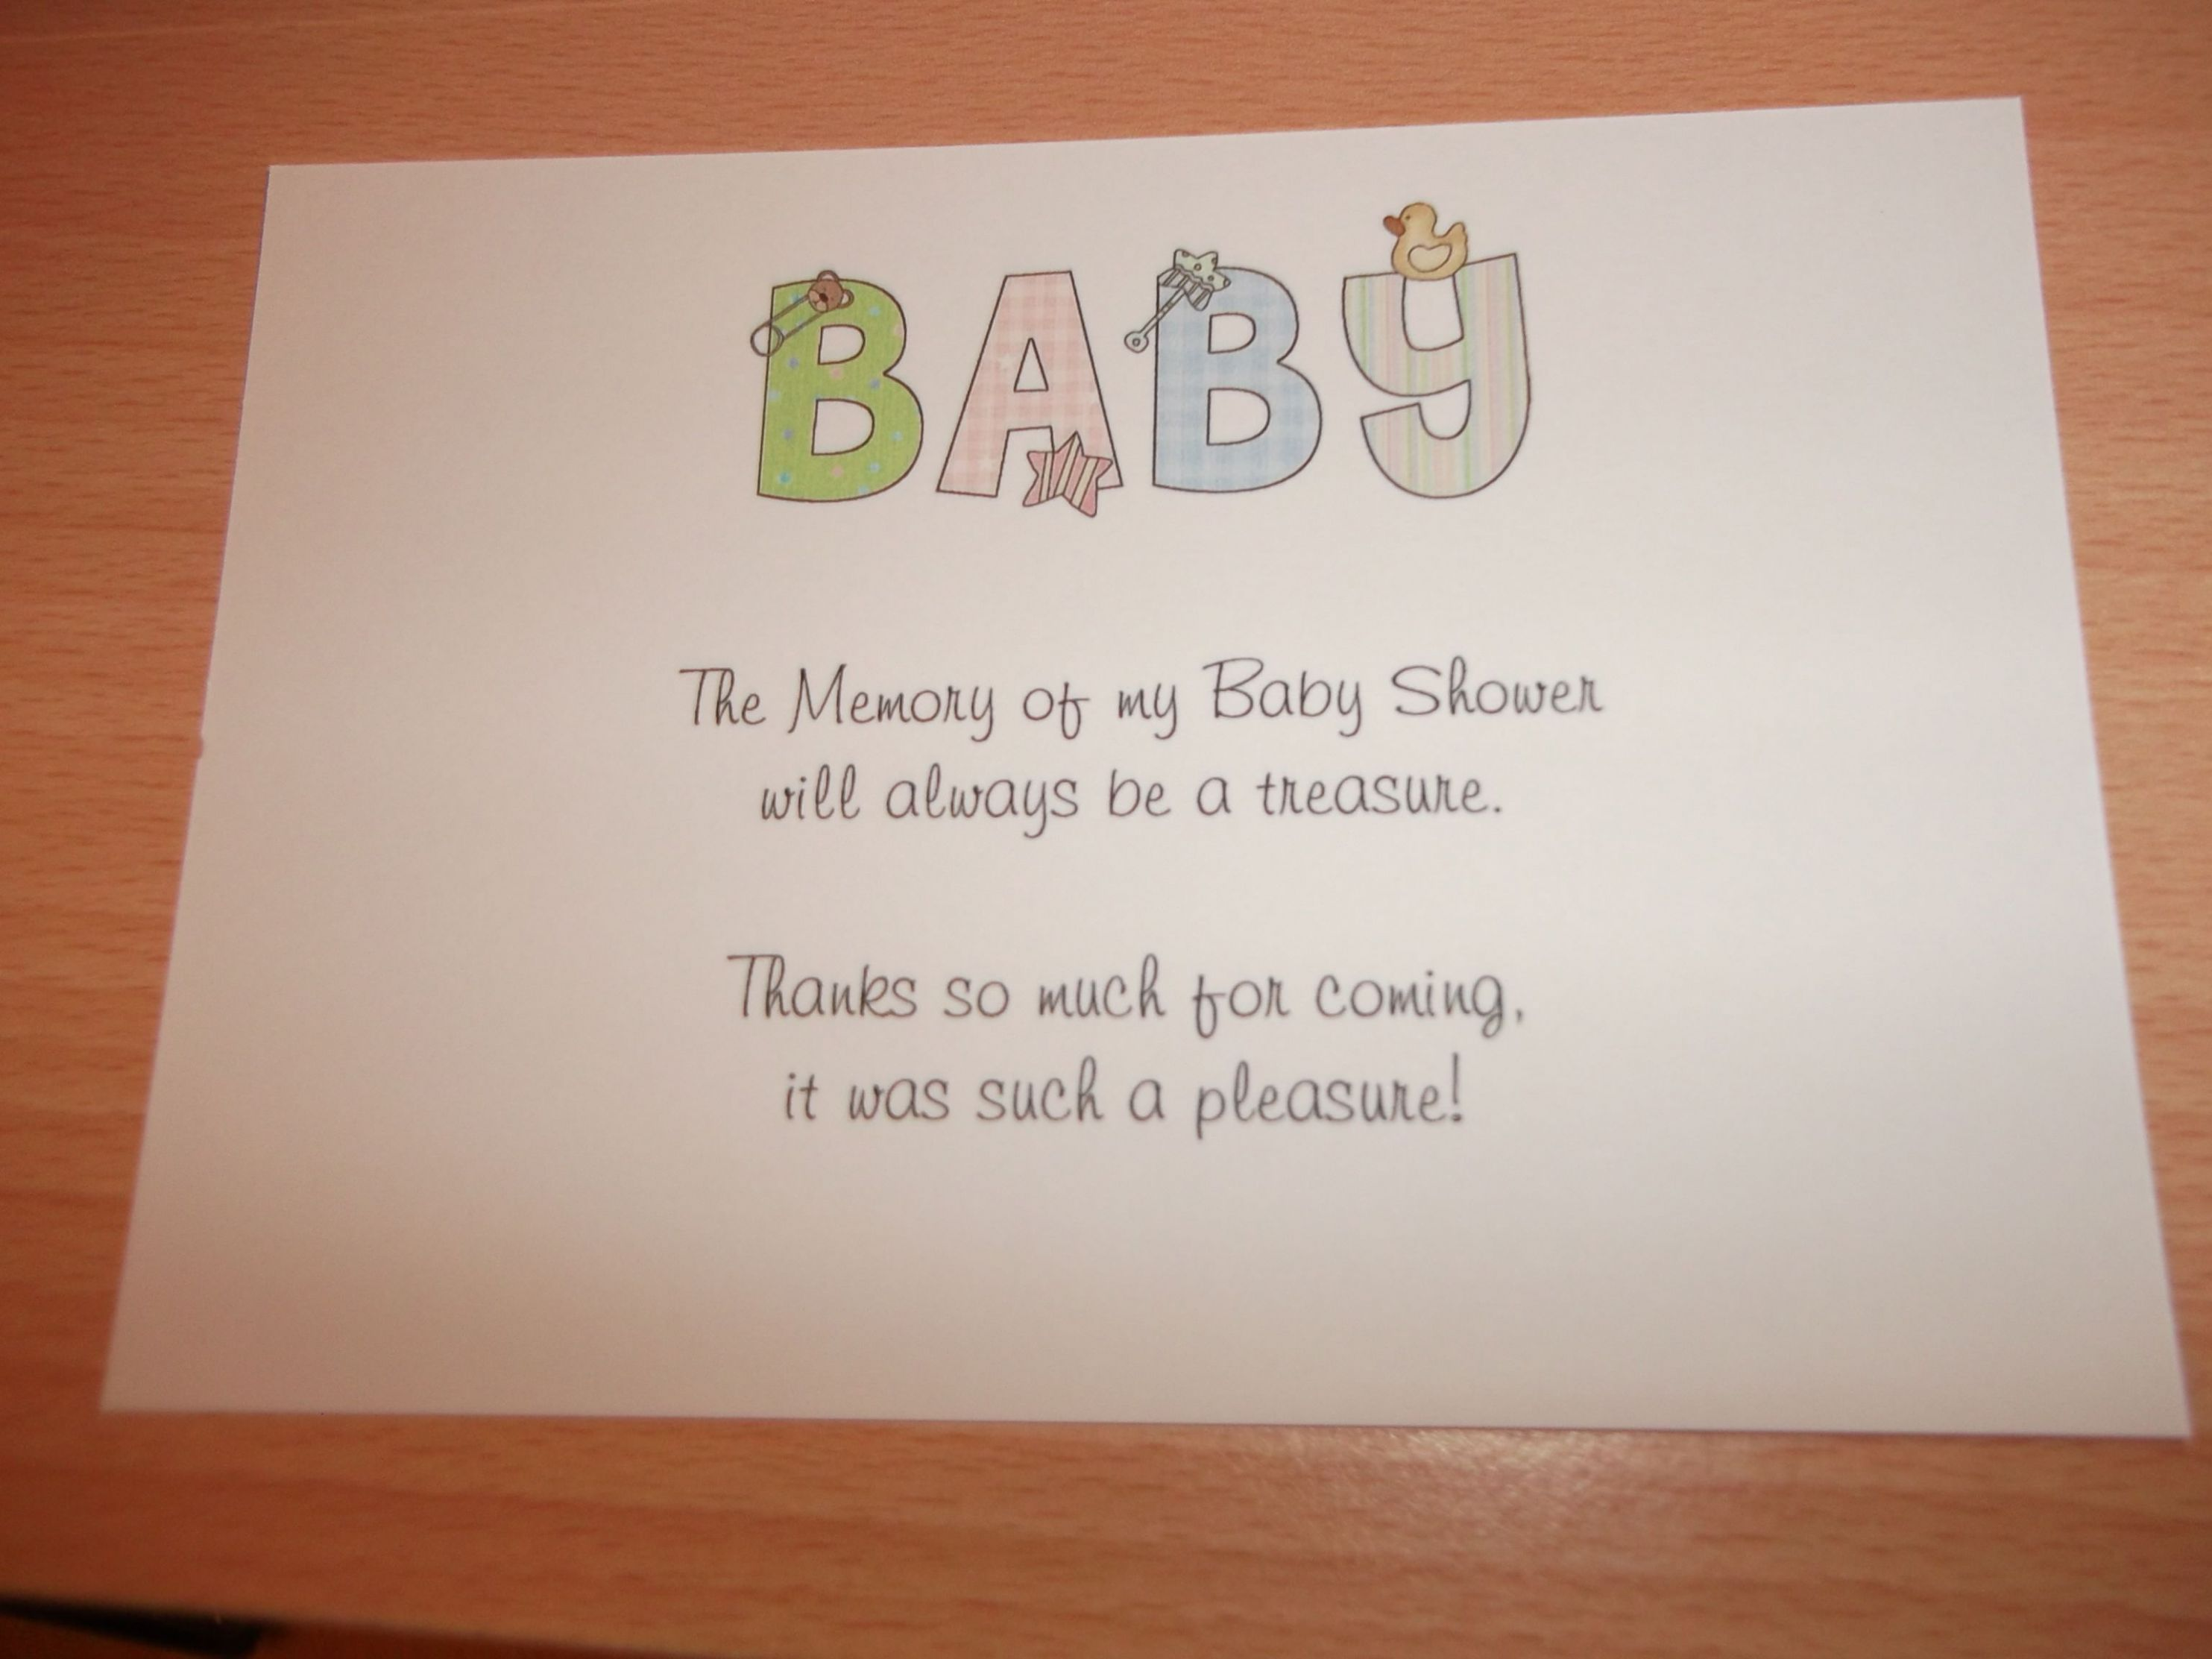 Baby Gift Thank You Wording From Baby : Baby shower thank you gifts bing images things